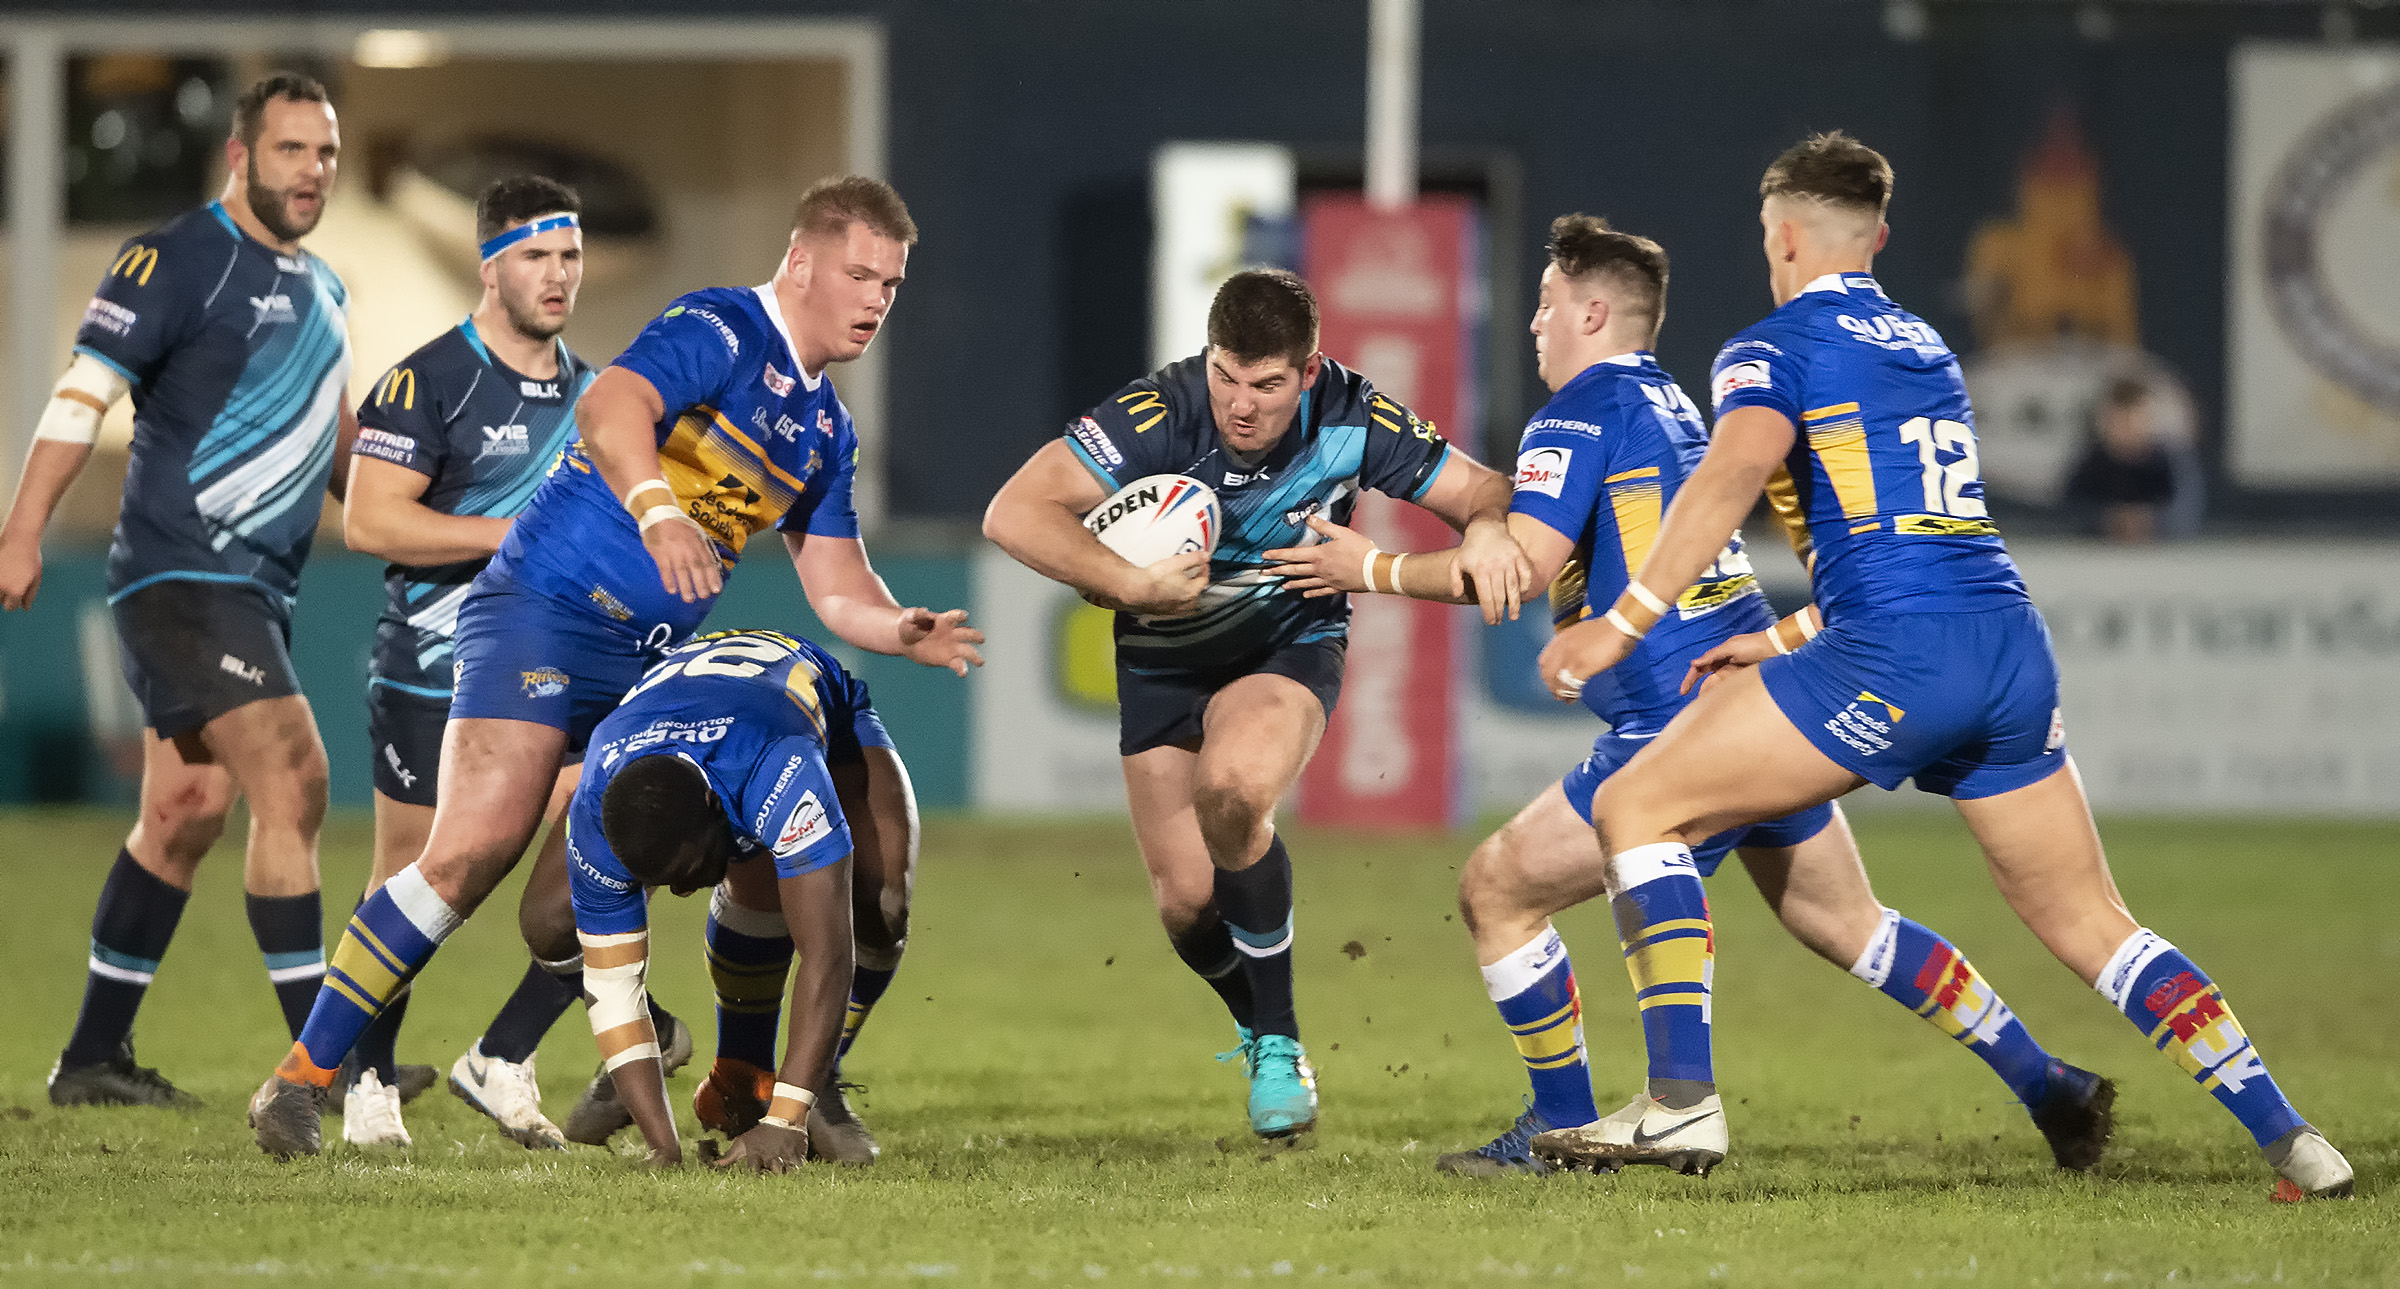 Bears in action this January v Leeds Rhinos